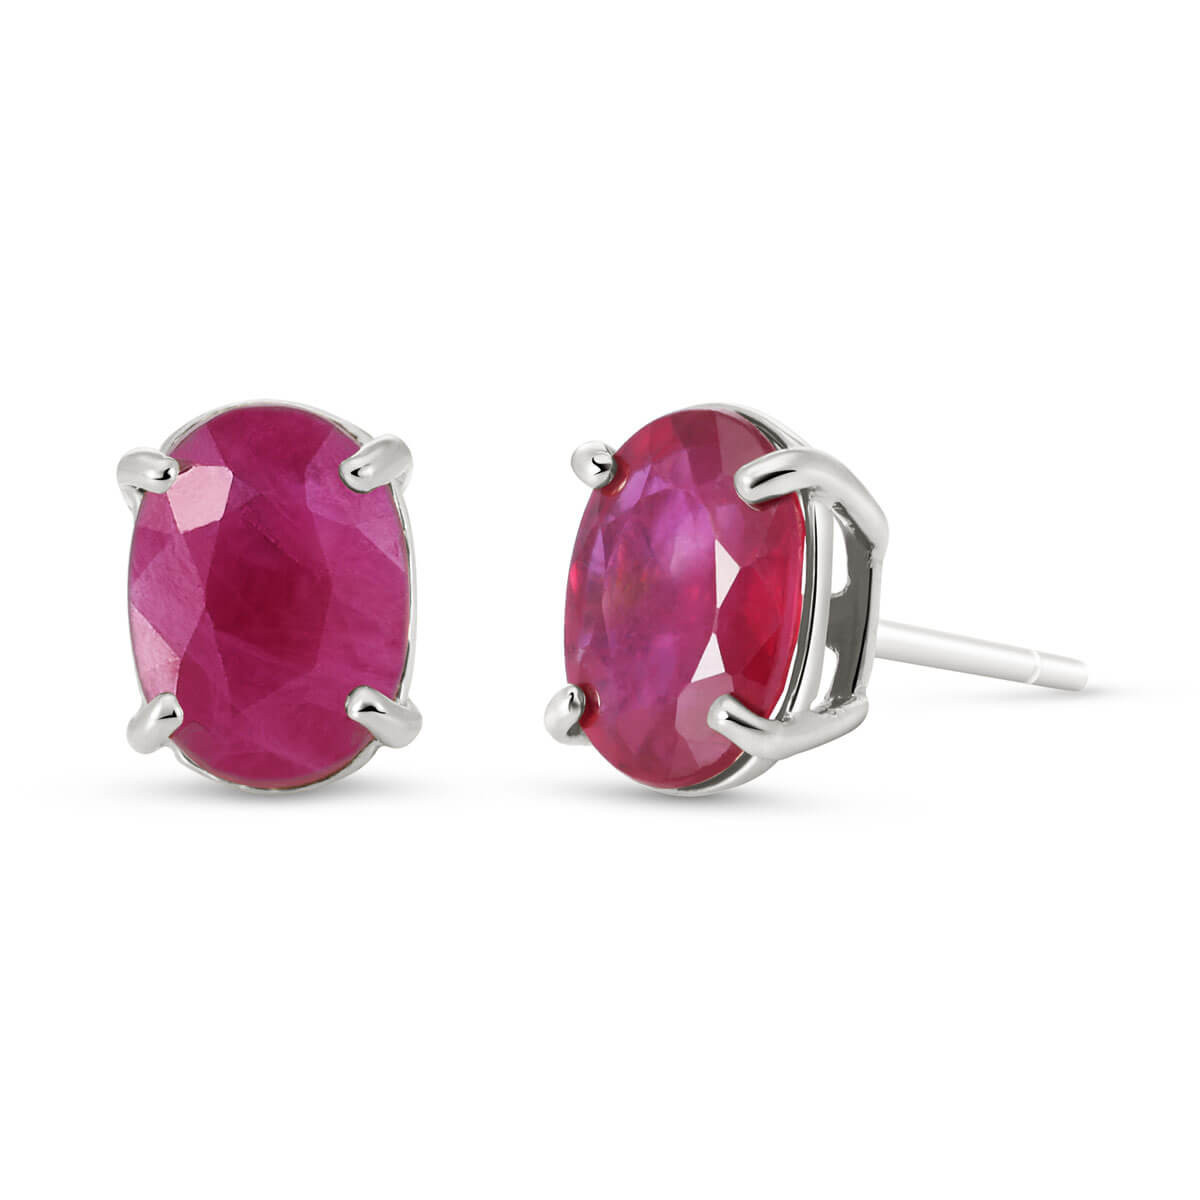 Ruby Stud Earrings 1.8 ctw in 9ct White Gold